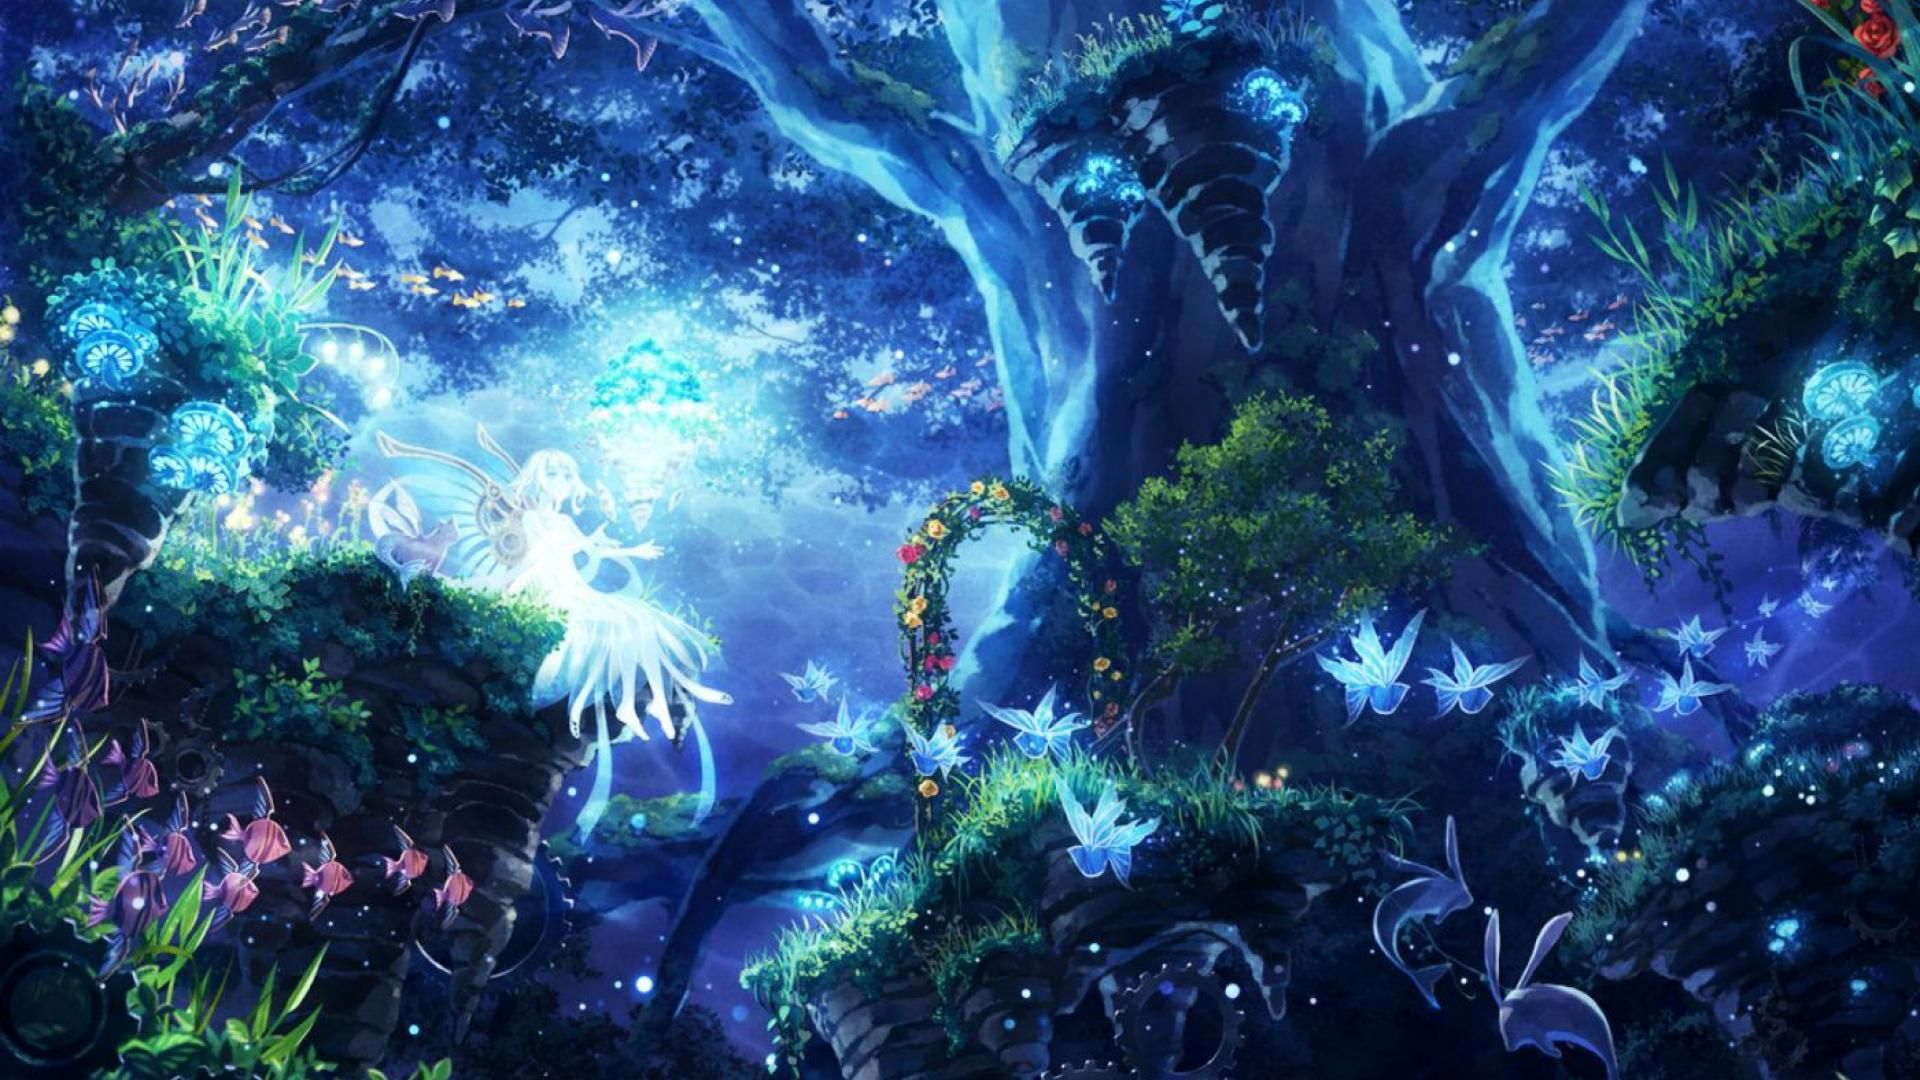 Fantasy World Wallpaper 80903 Hd Wallpapers Wallpaper